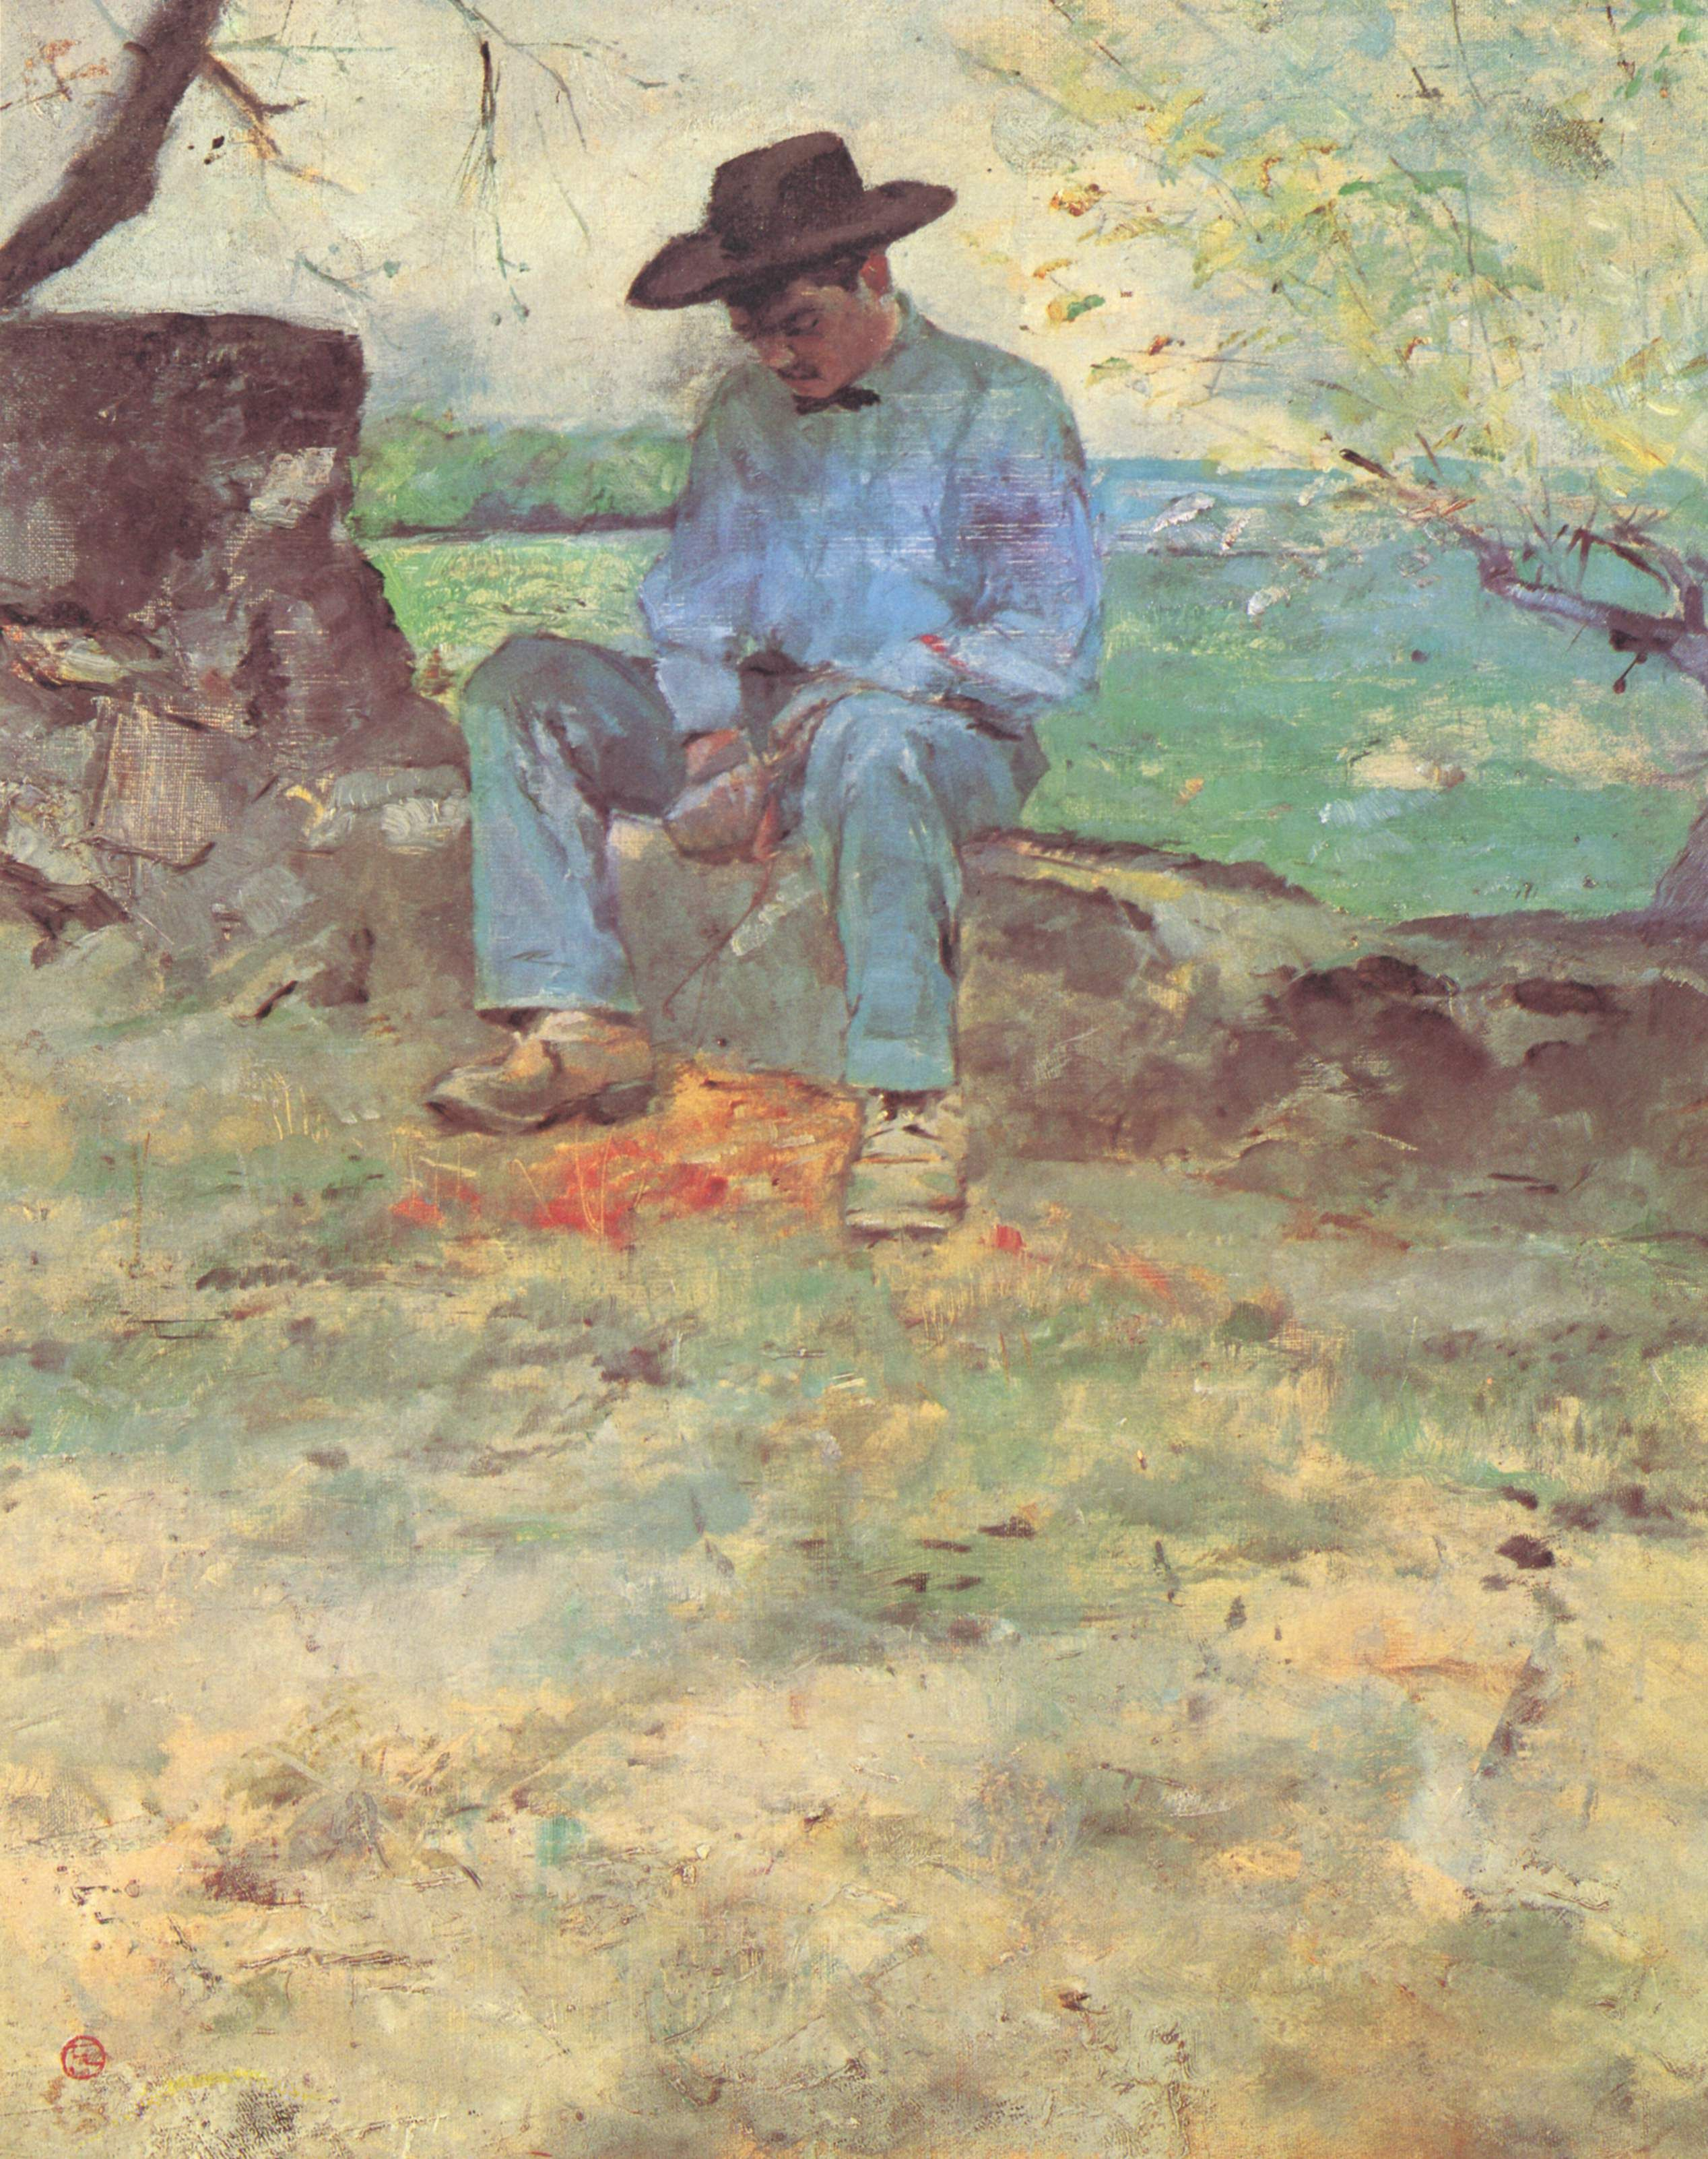 This is Tom Joad freash out of jail in his new clothes and shoes waiting for a ride home.(Henri de Toulouse-Lautrec - The Young Routy Céleyran, 1882, oil on canvas)